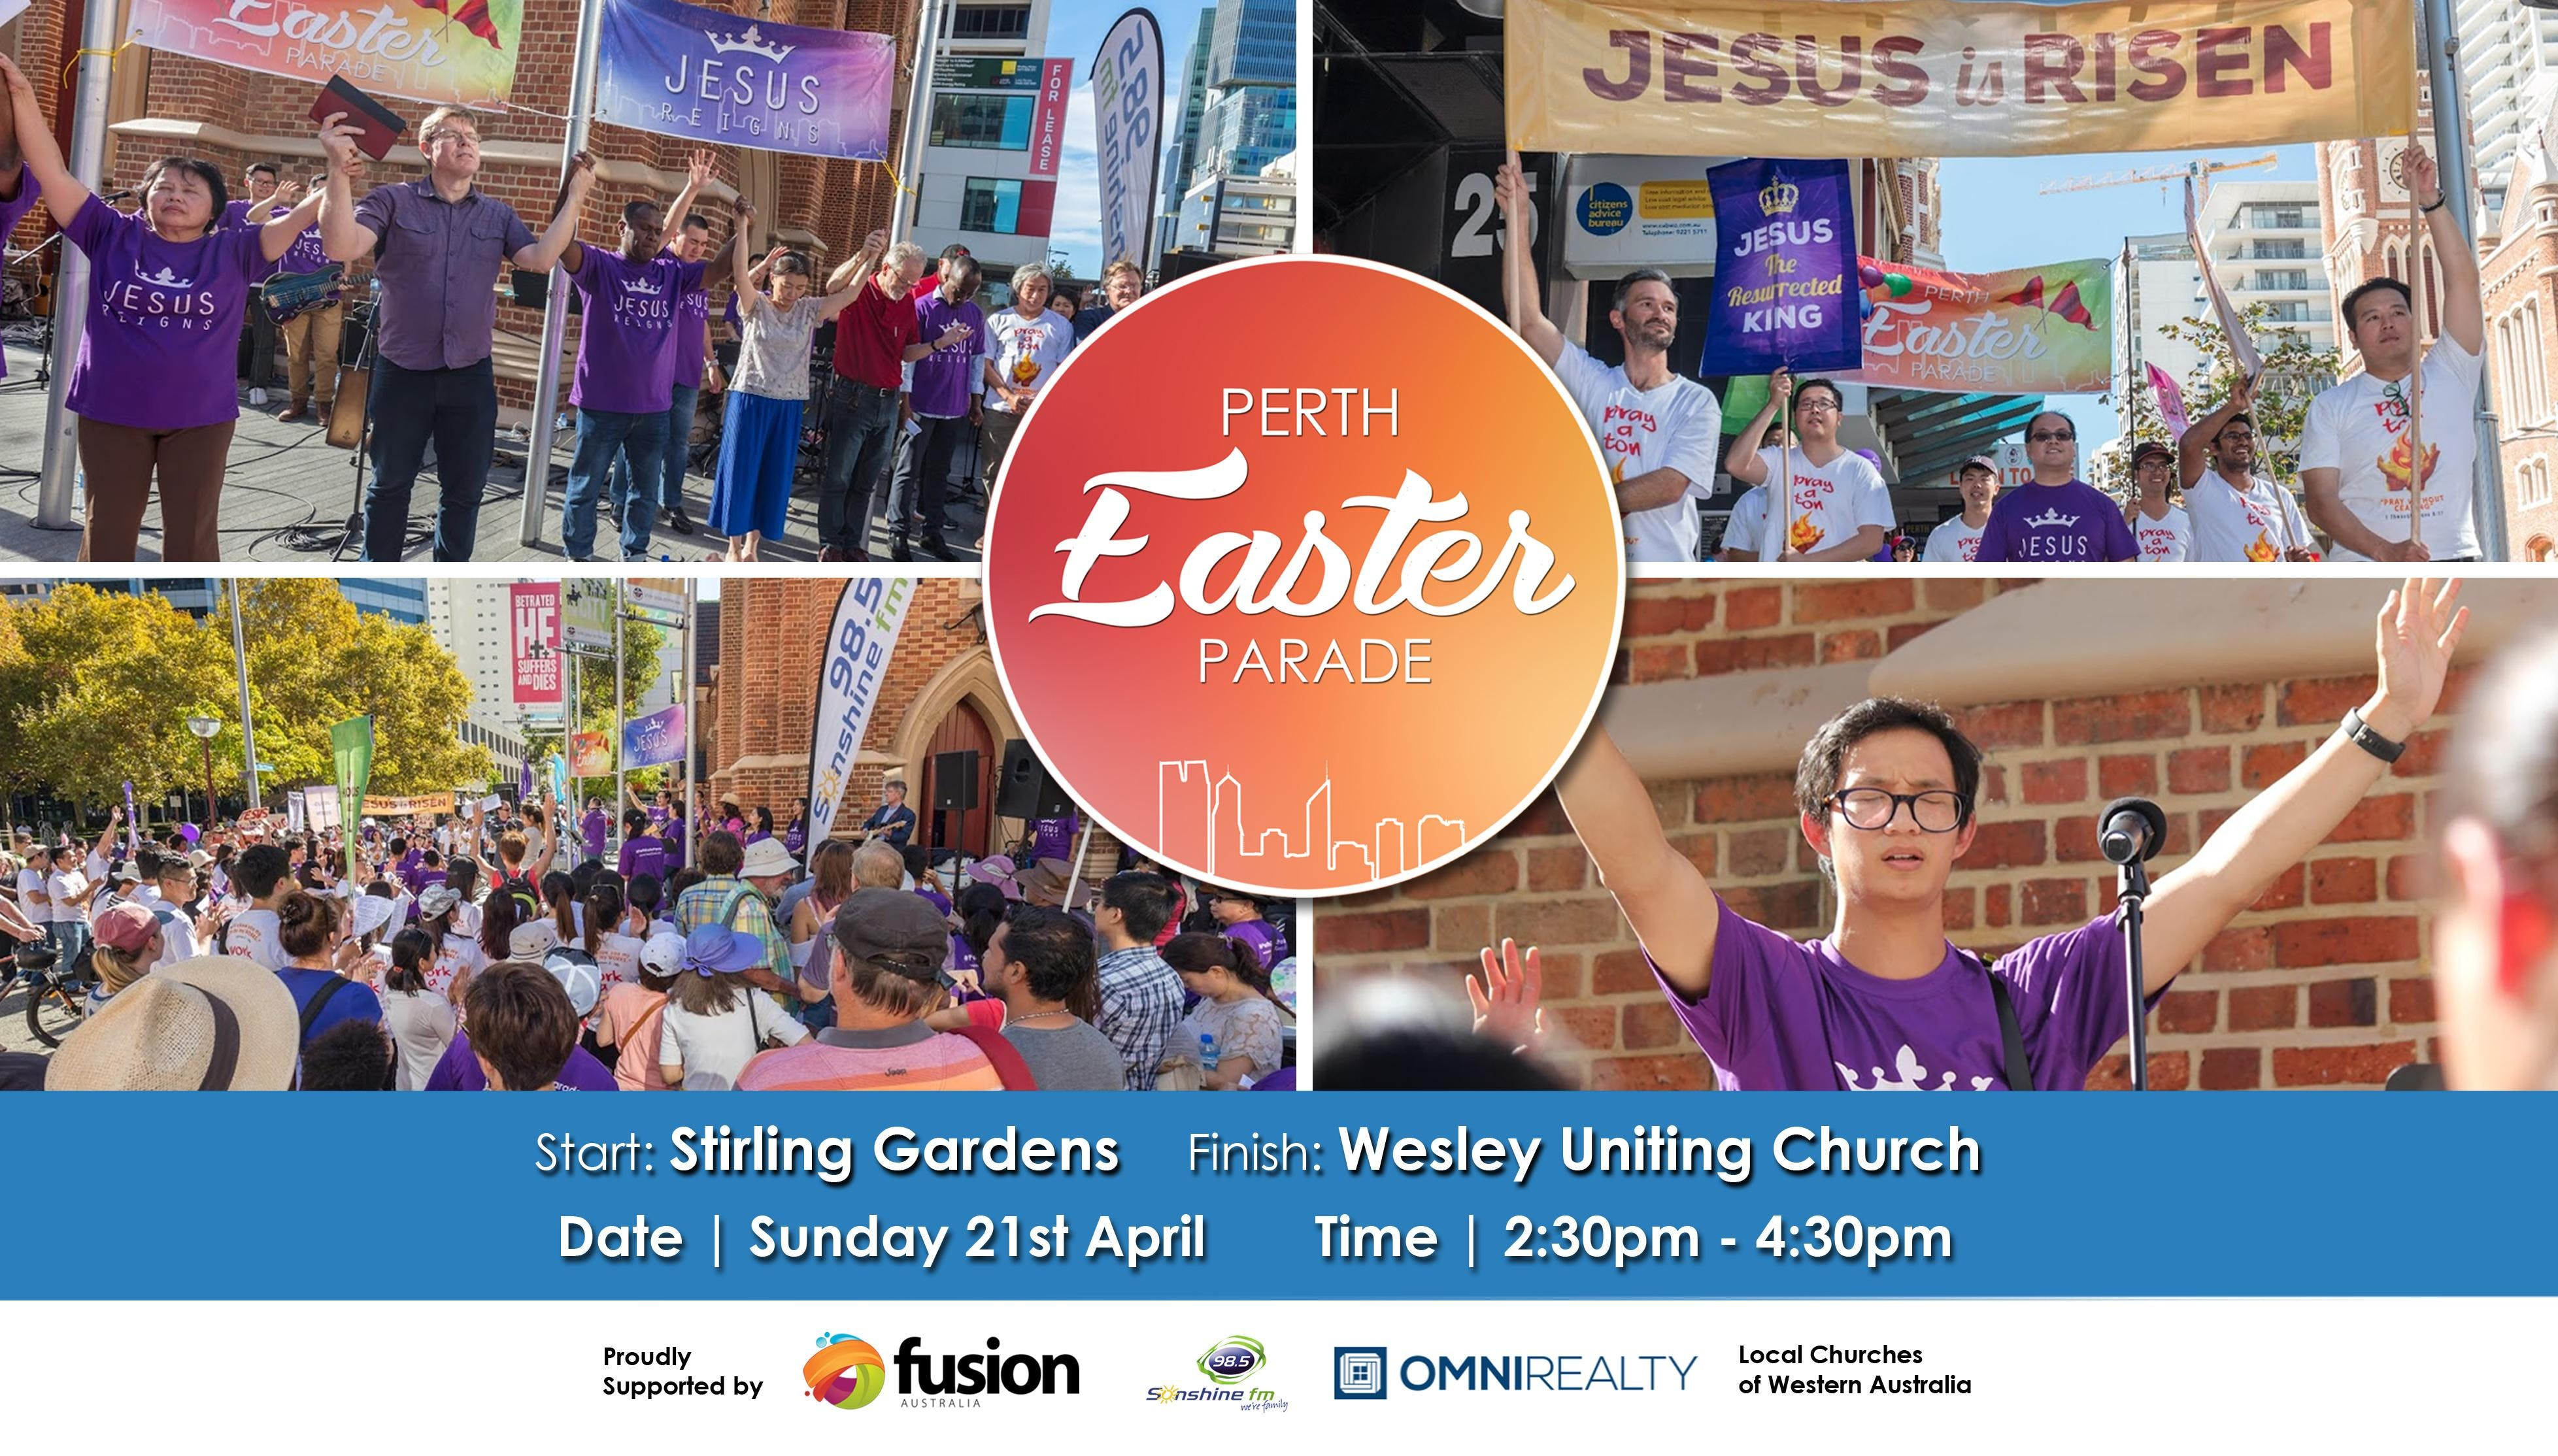 Perth Easter Parade 2019